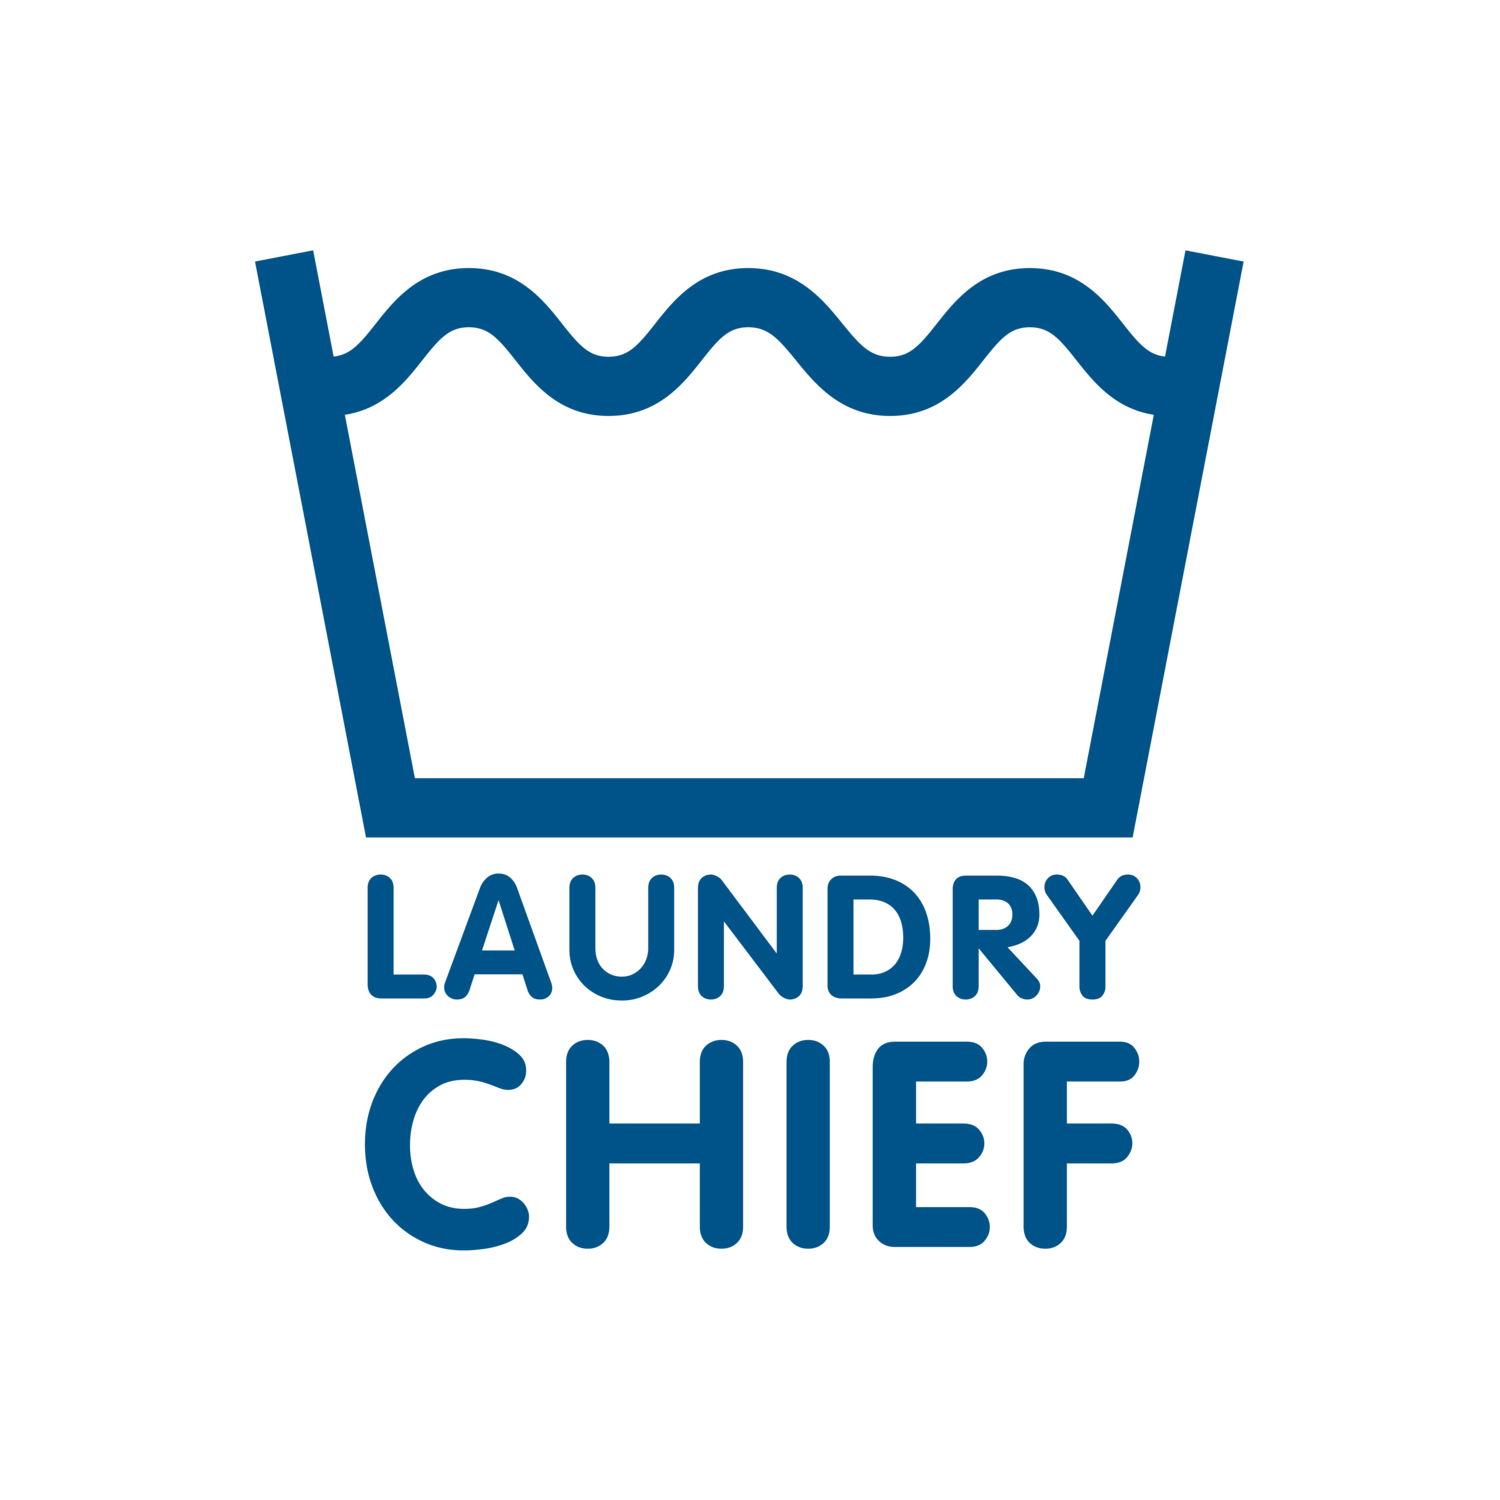 Laundry Chief